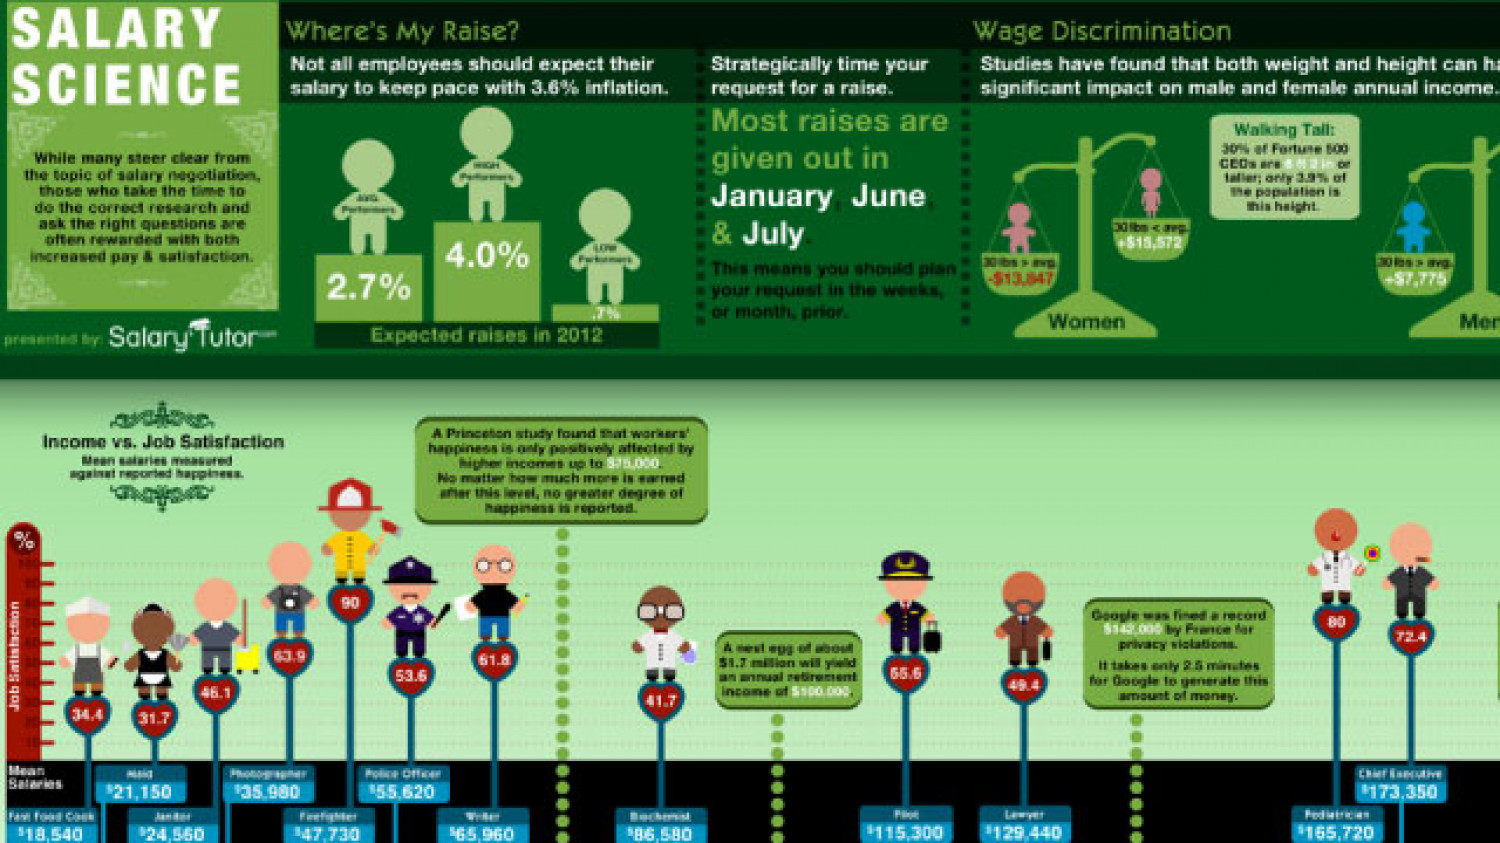 Salary Science Infographic